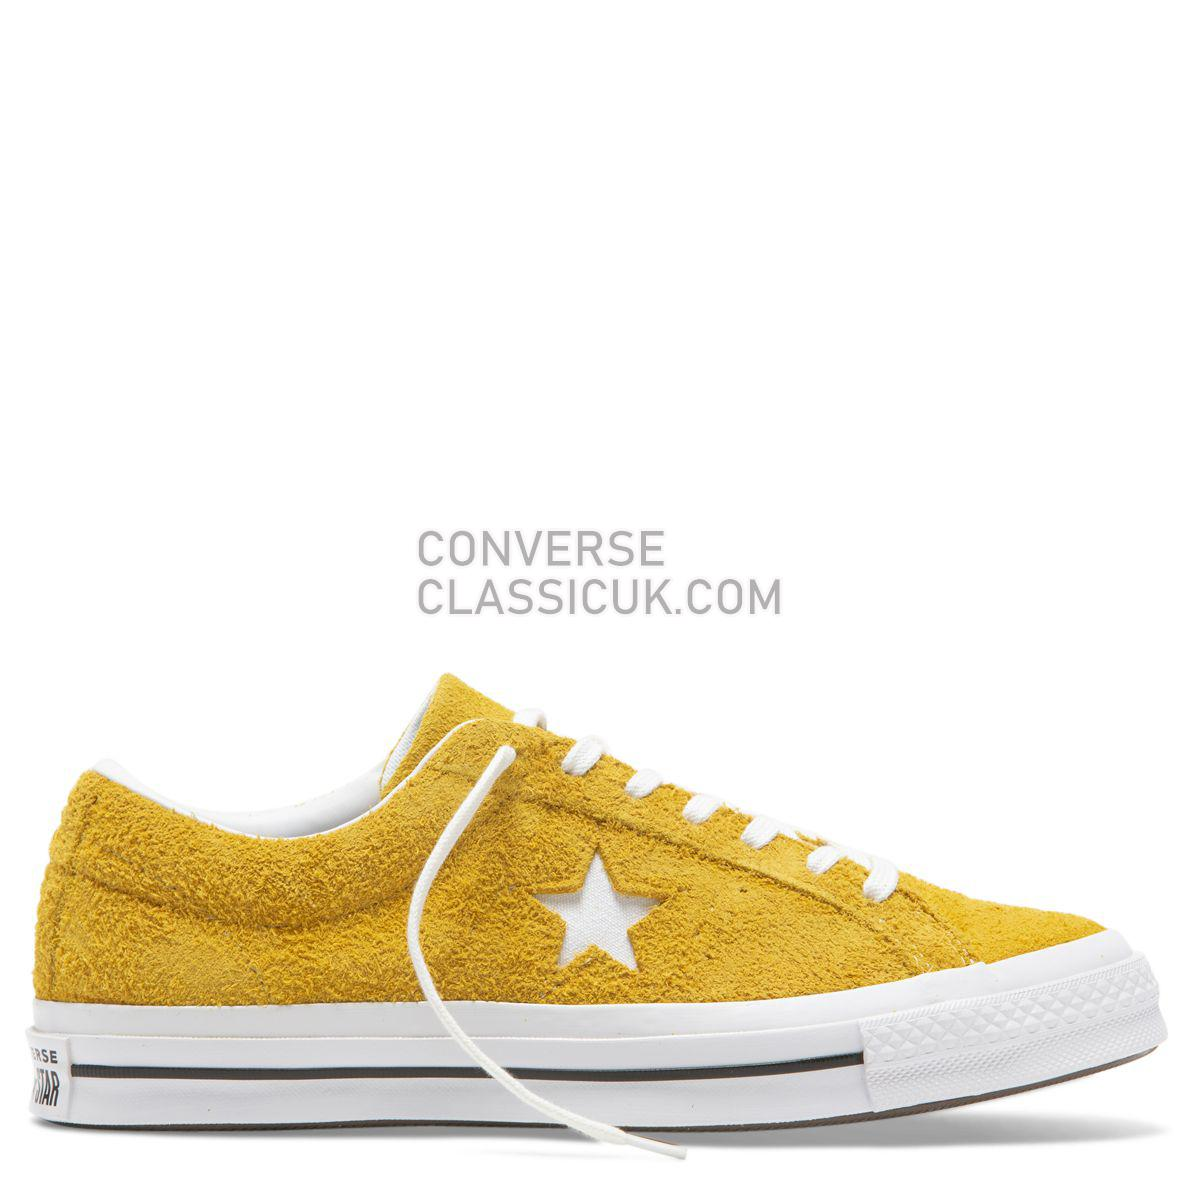 Converse One Star Vintage Suede Low Top Gold Dart Mens Womens Unisex 165033 Gold Dart/White/Black Shoes